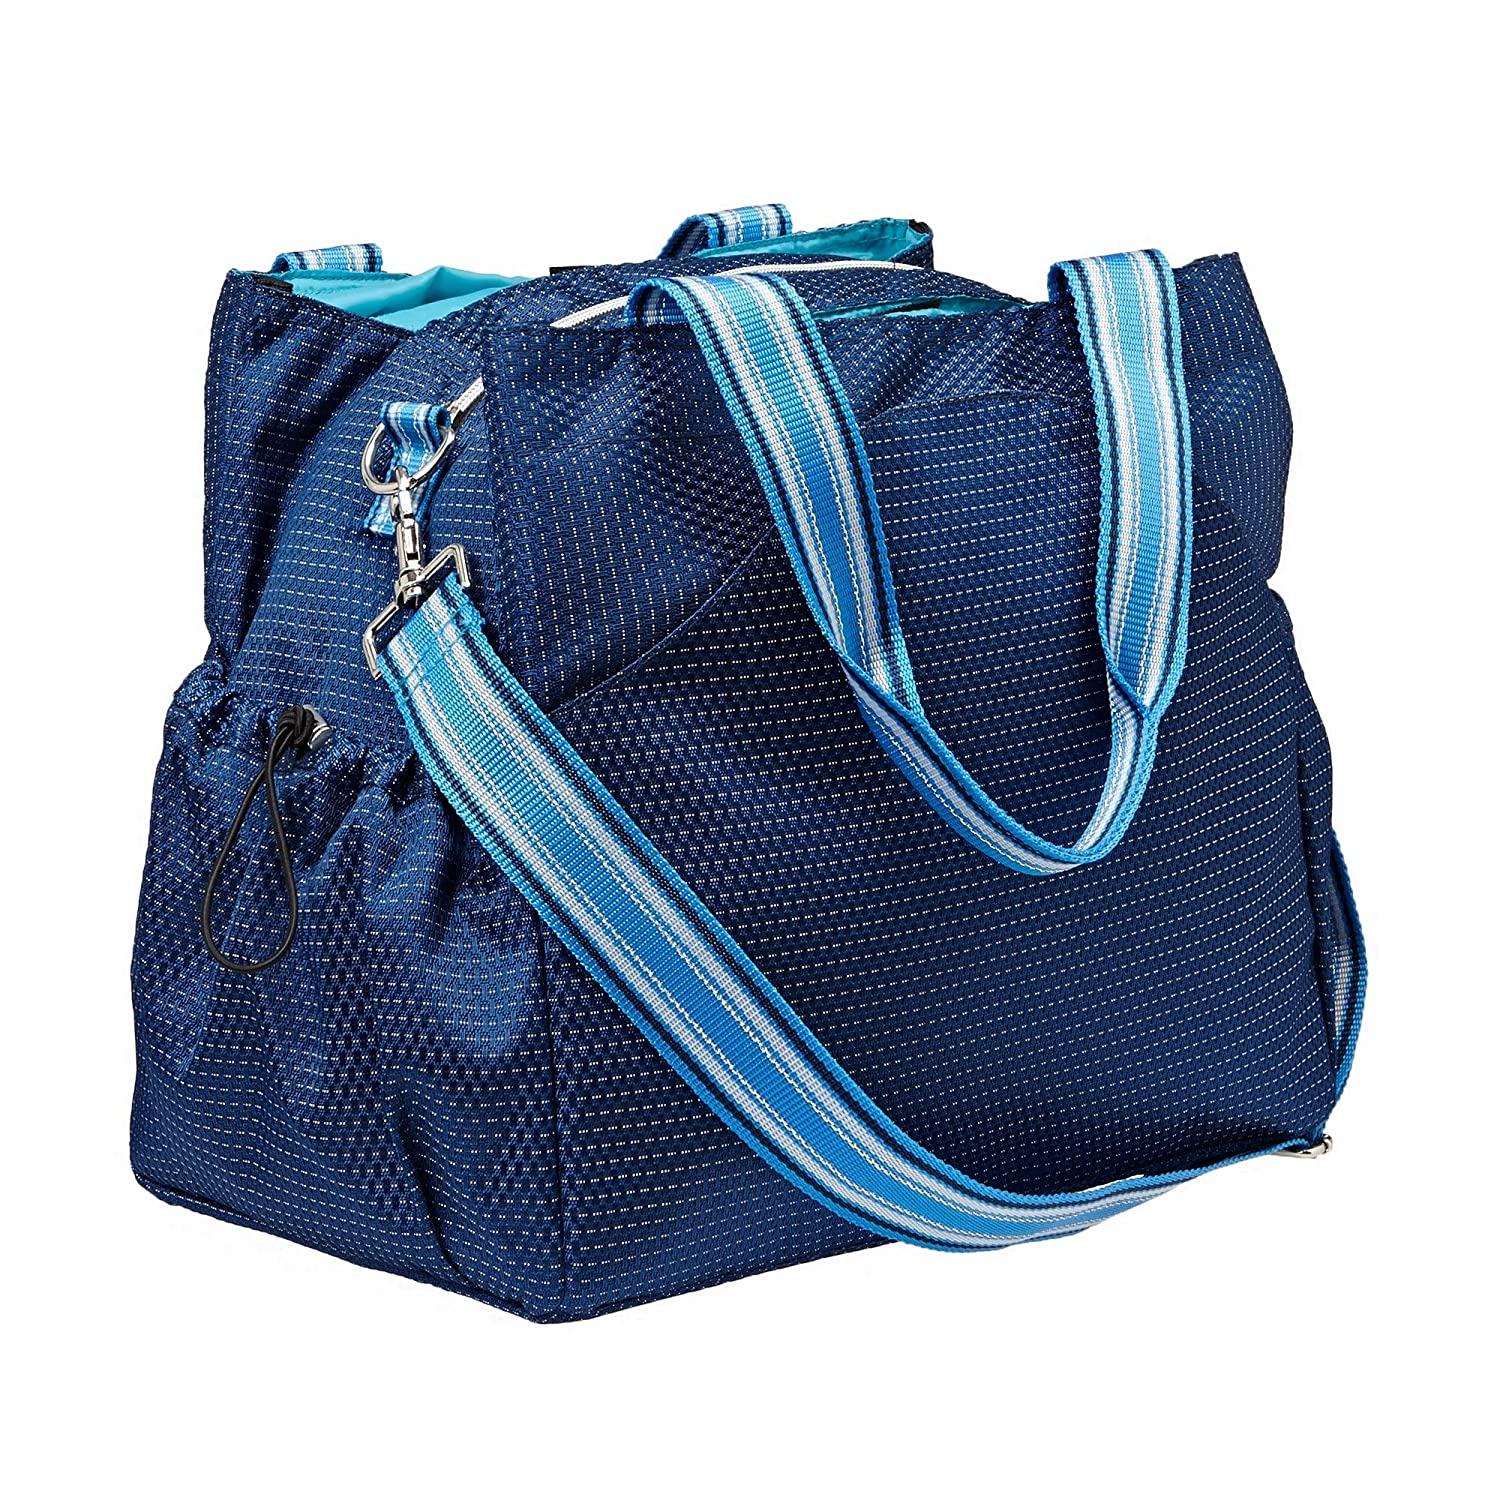 Navy Light bluee One Size Navy Light bluee One Size Derby House Pro Grooming Bag One Size Navy Light bluee